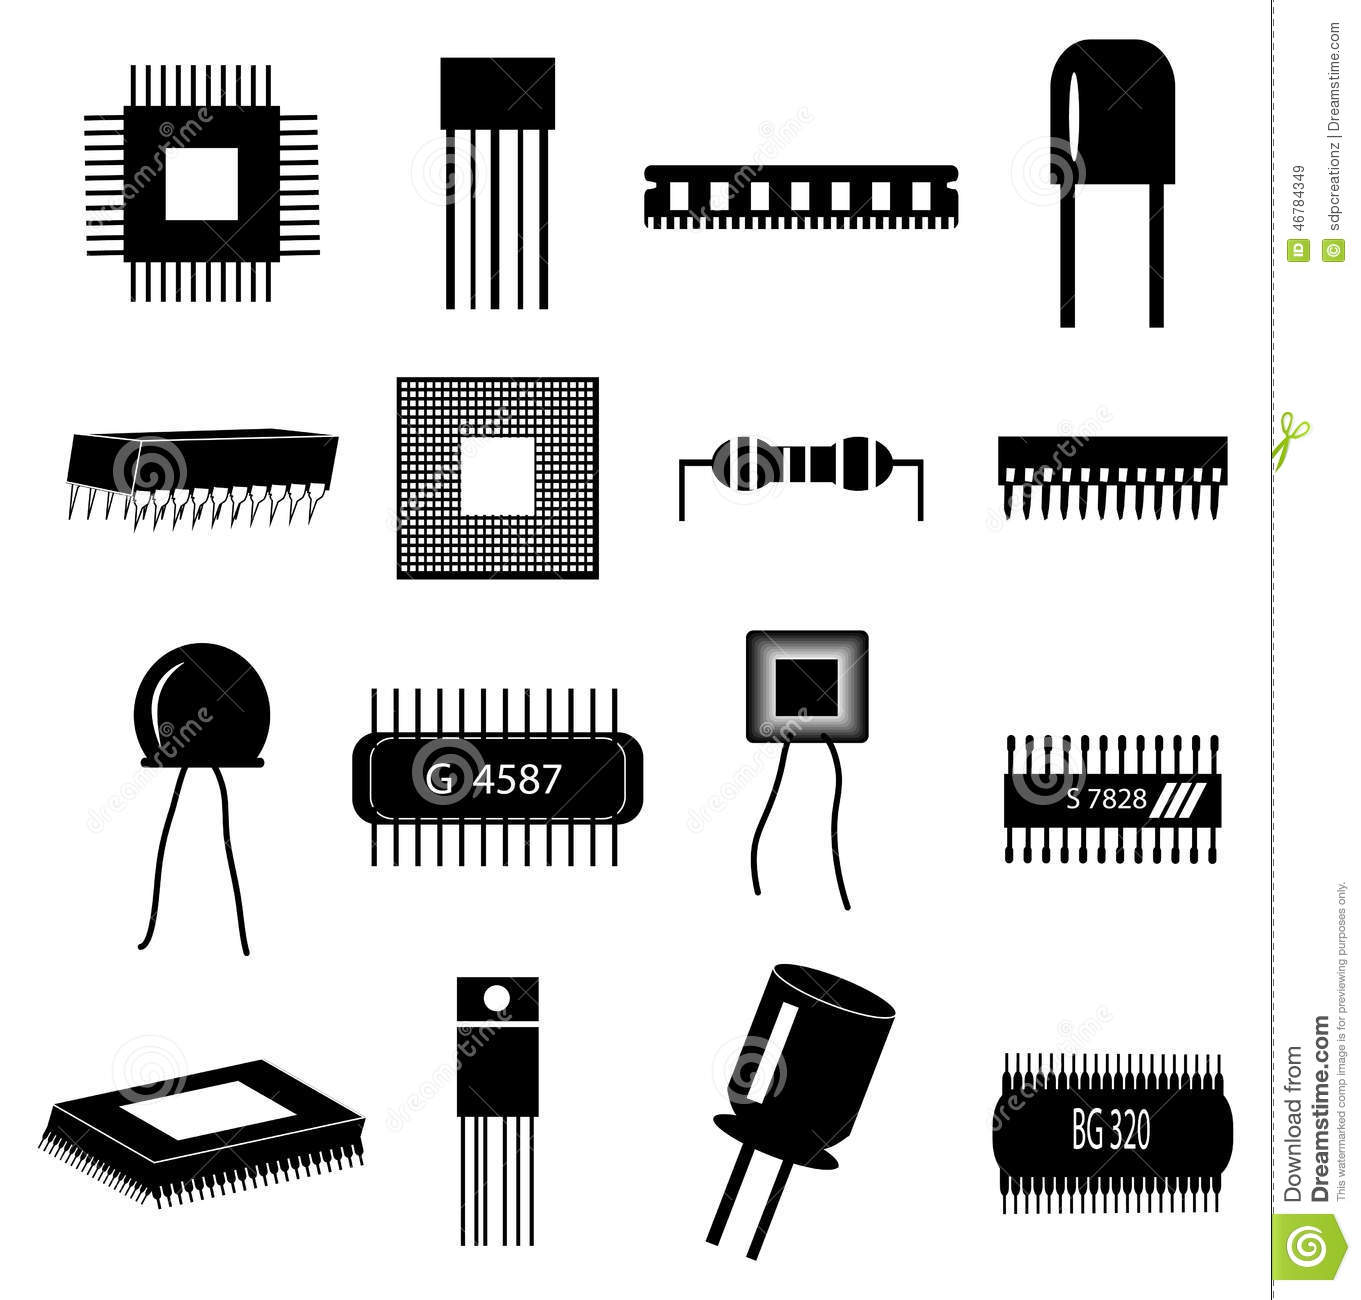 Computer circuit icons set stock vector. Illustration of ...